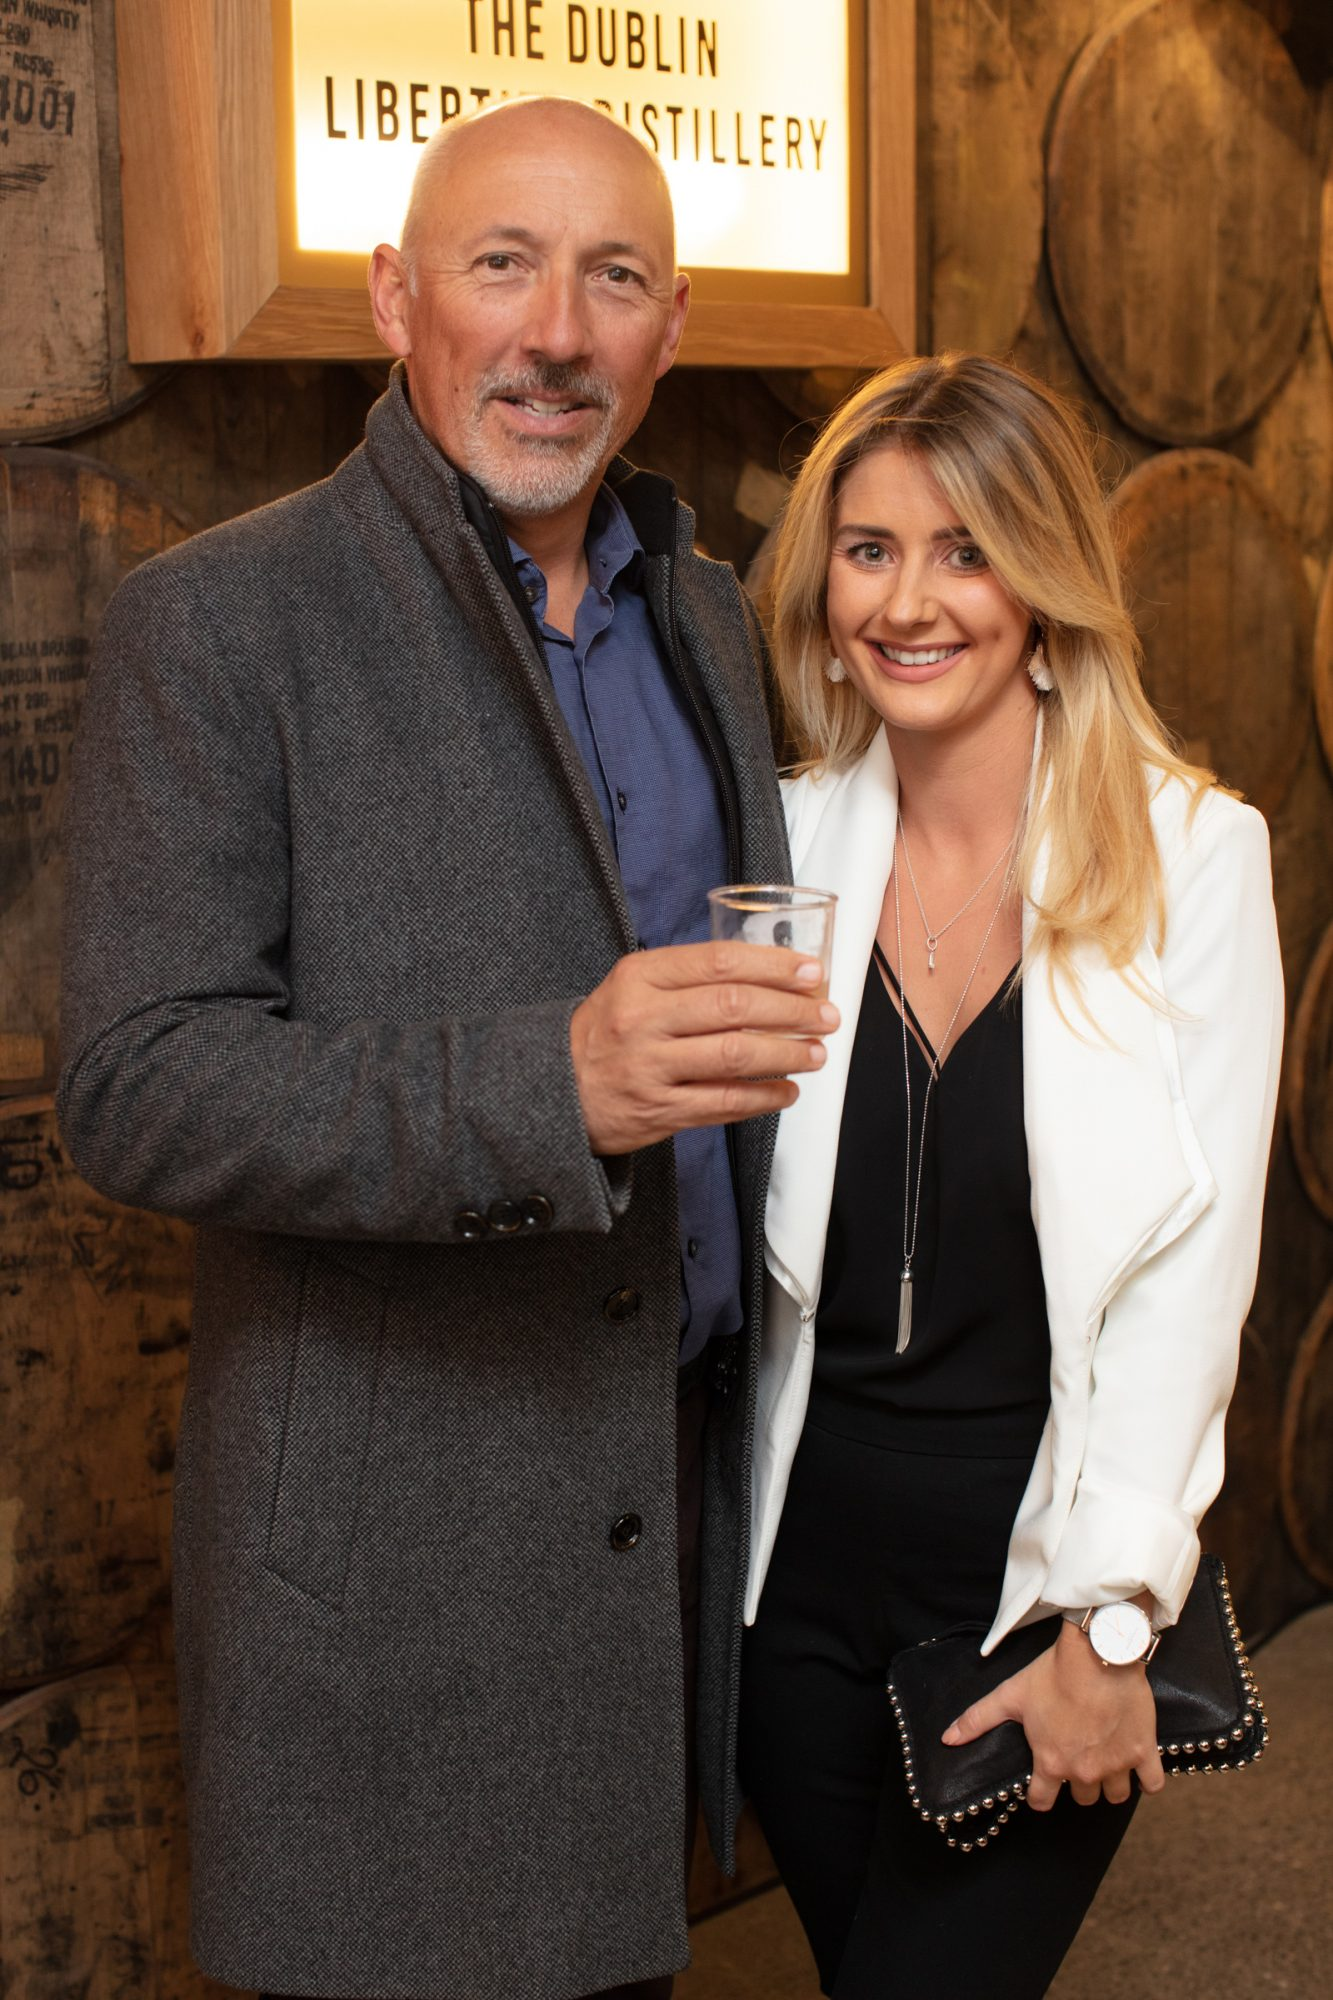 Warren Scott & Lauren Edge pictured at the preview of The Dublin Liberties Distillery, the much anticipated new craft distillery in the heart of the Liberties. Photo: Anthony Woods.